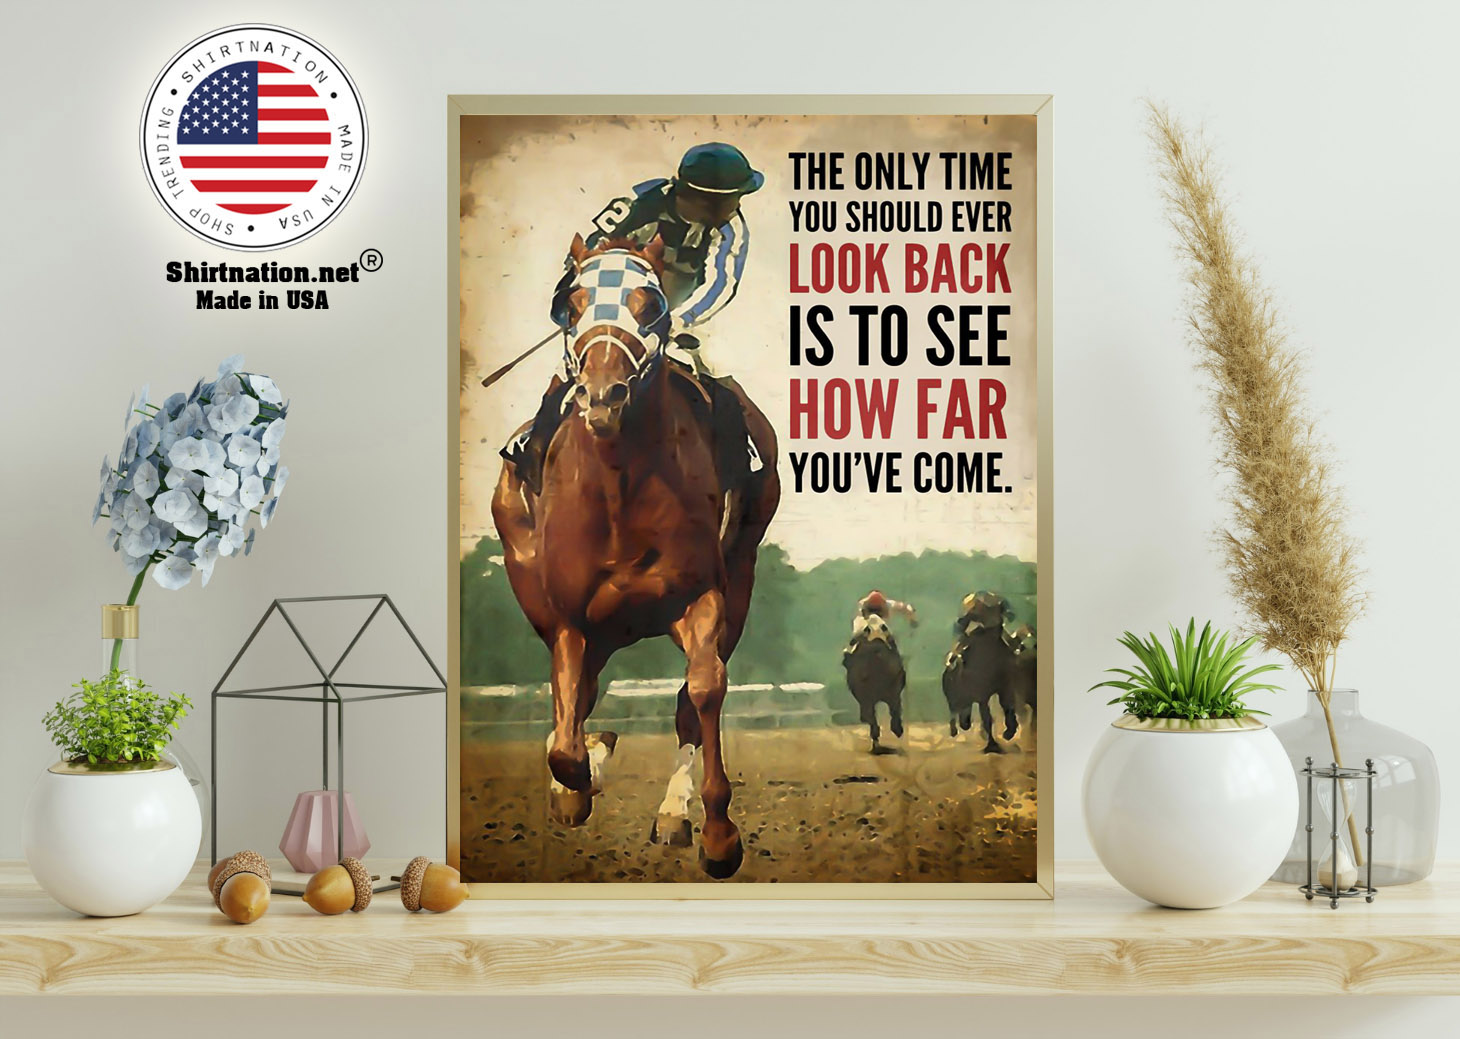 The only time you should ever look back is see how far youve come poster 15 1